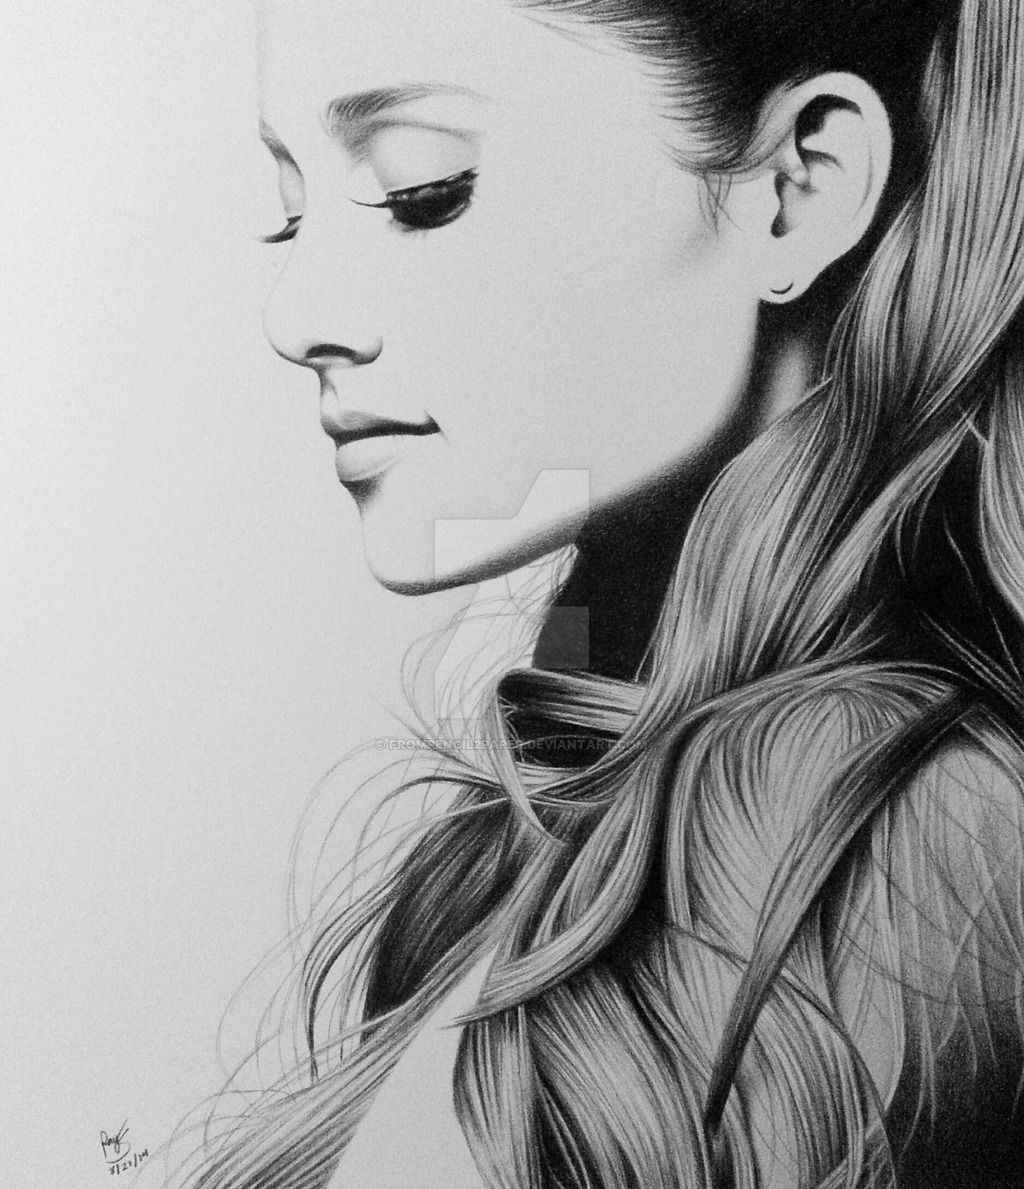 Artistiq Ariana Grande Pencil Sketch